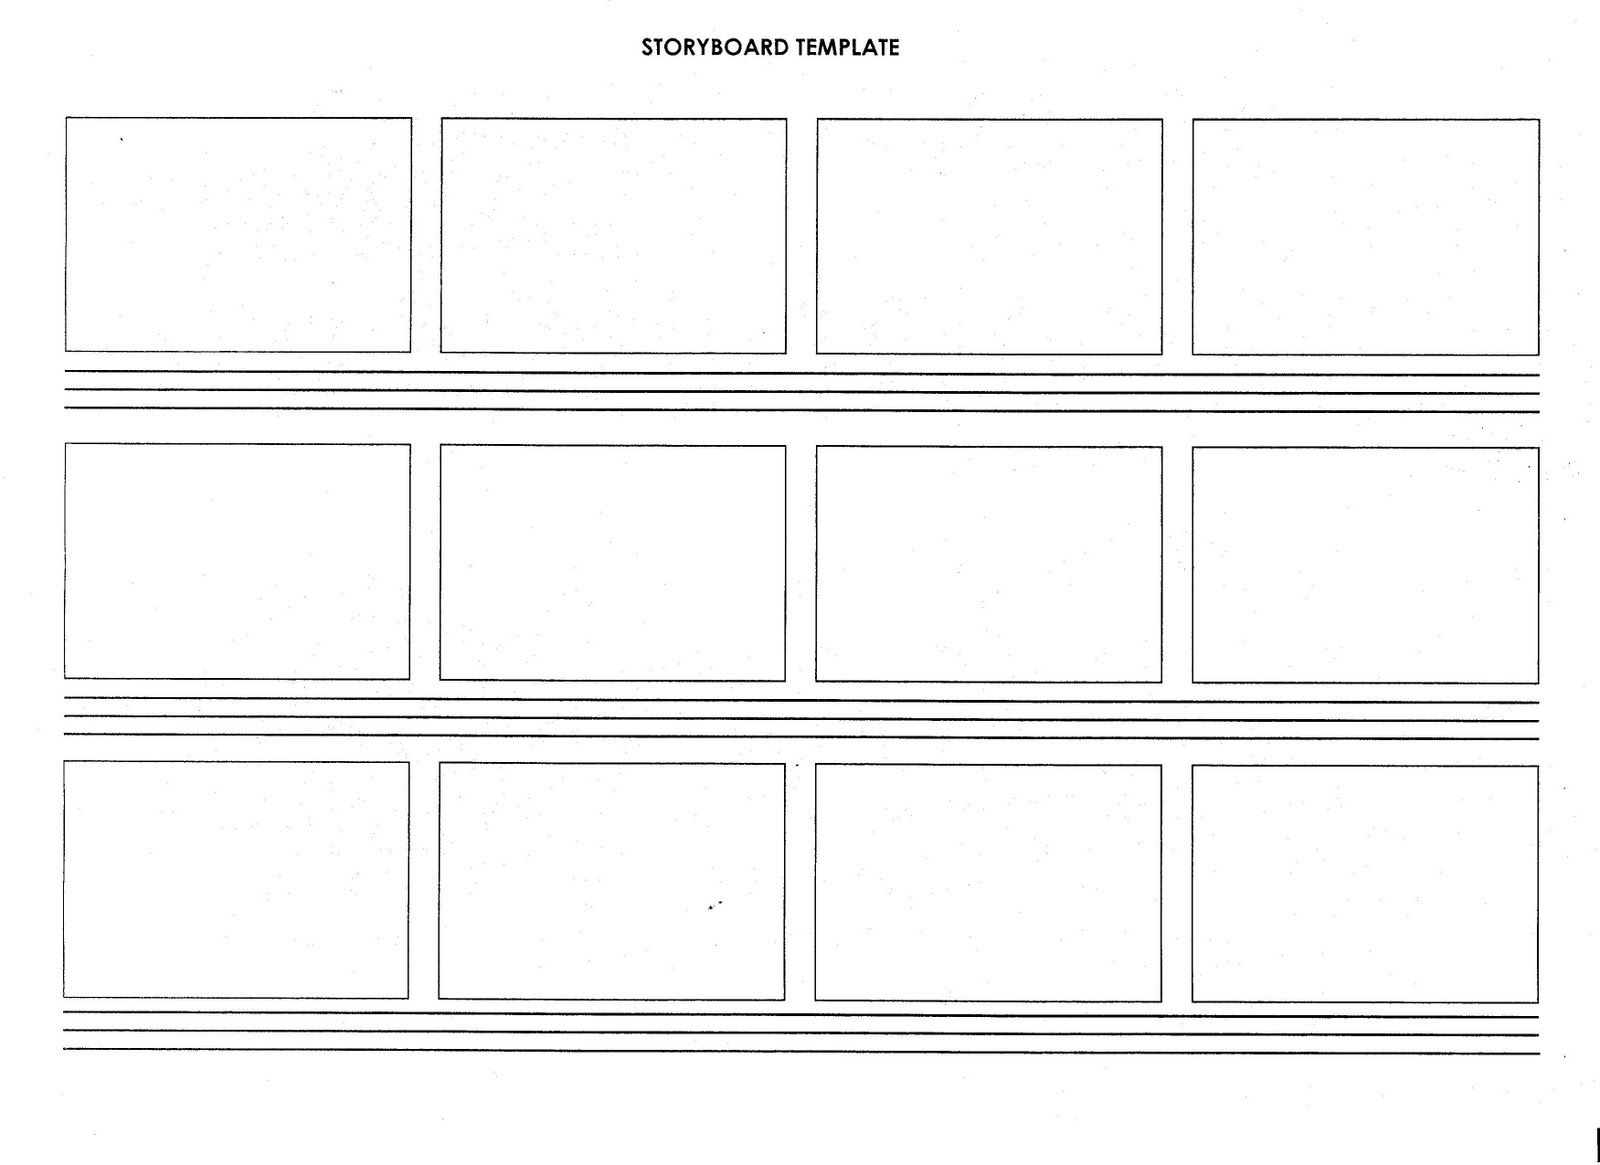 a2 media  sample storyboard and script